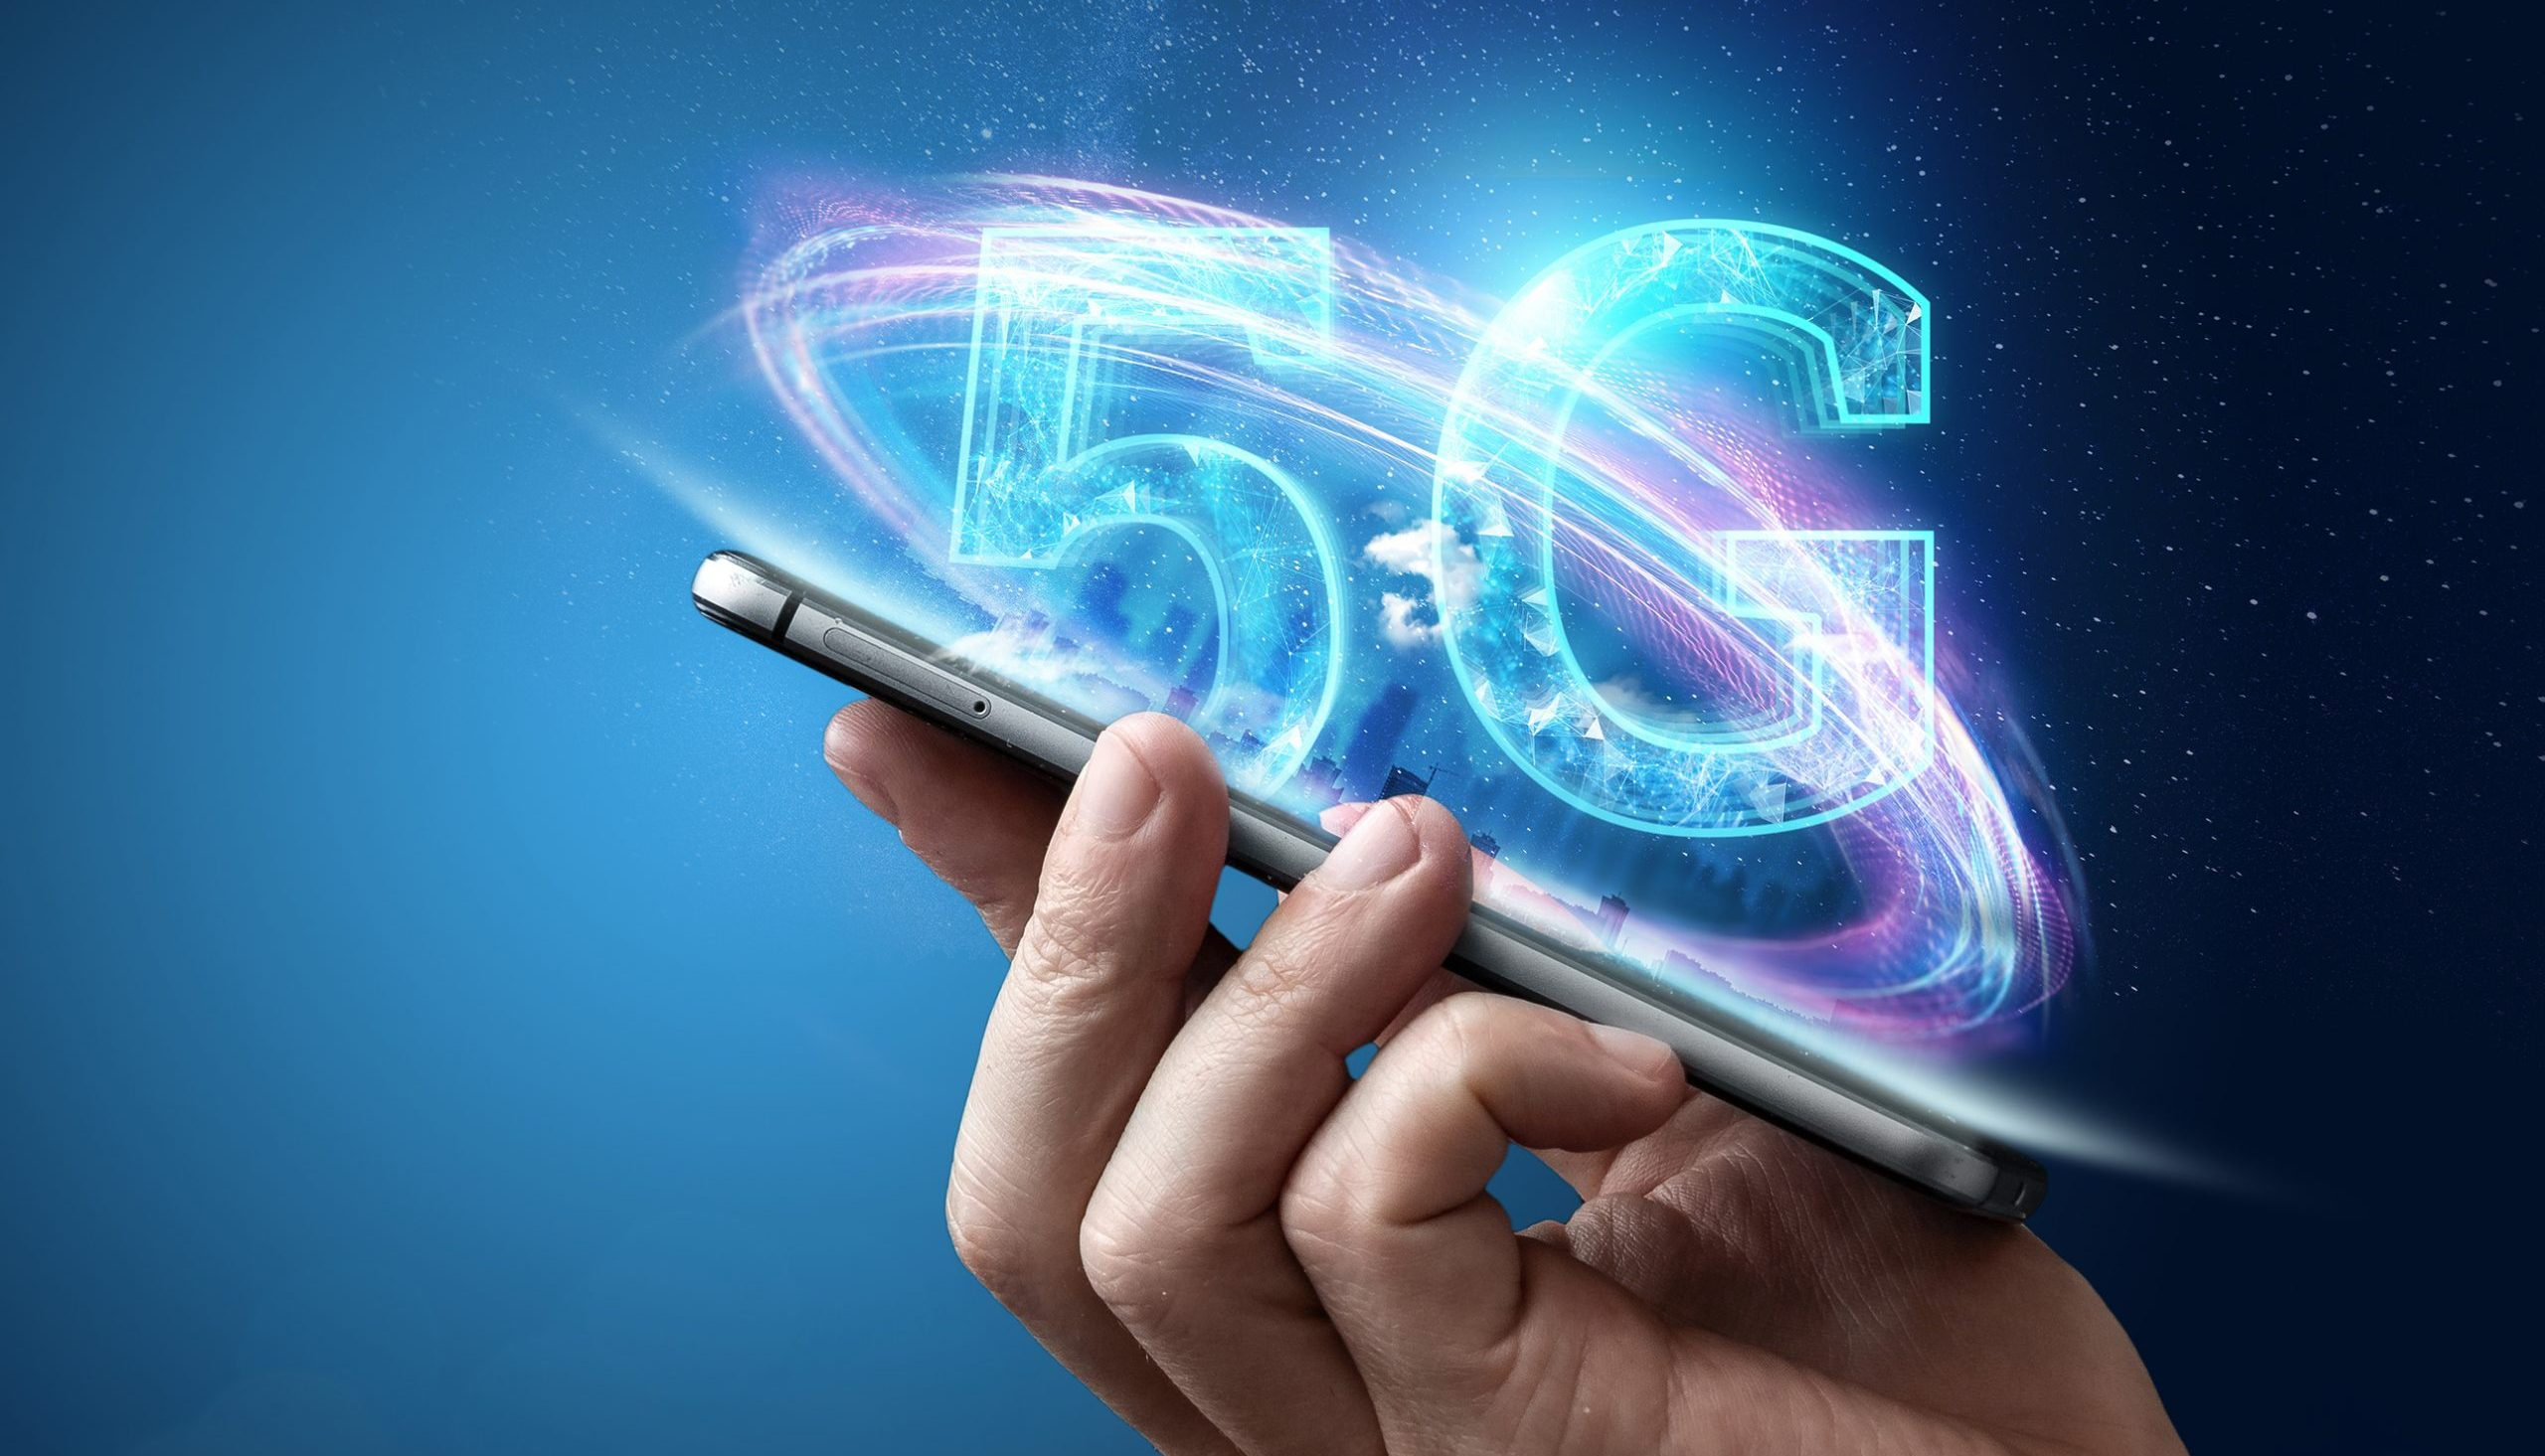 5G's so Fast, that 4G's Jealous!